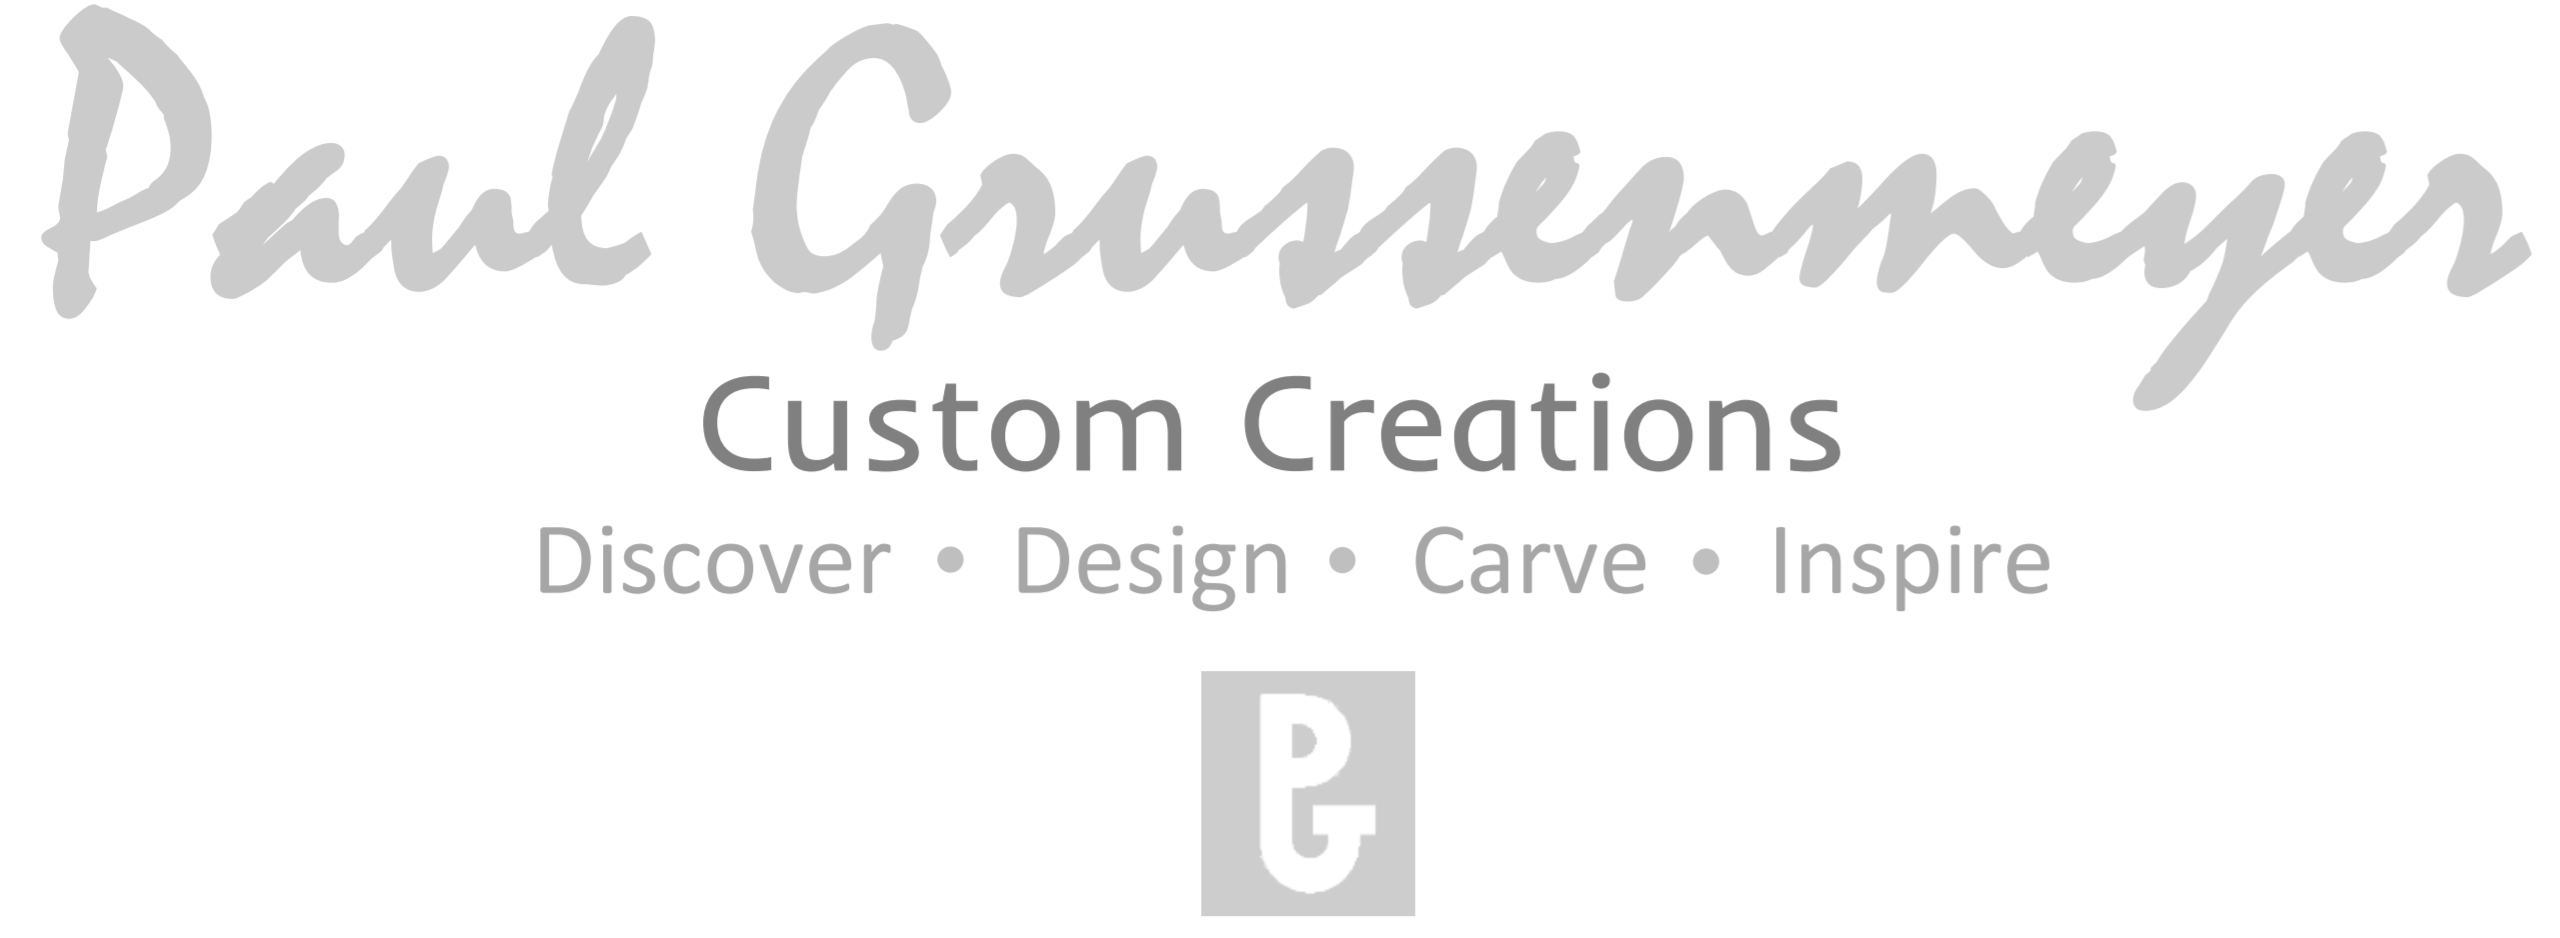 Paul Grussenmeyer Custom Creations